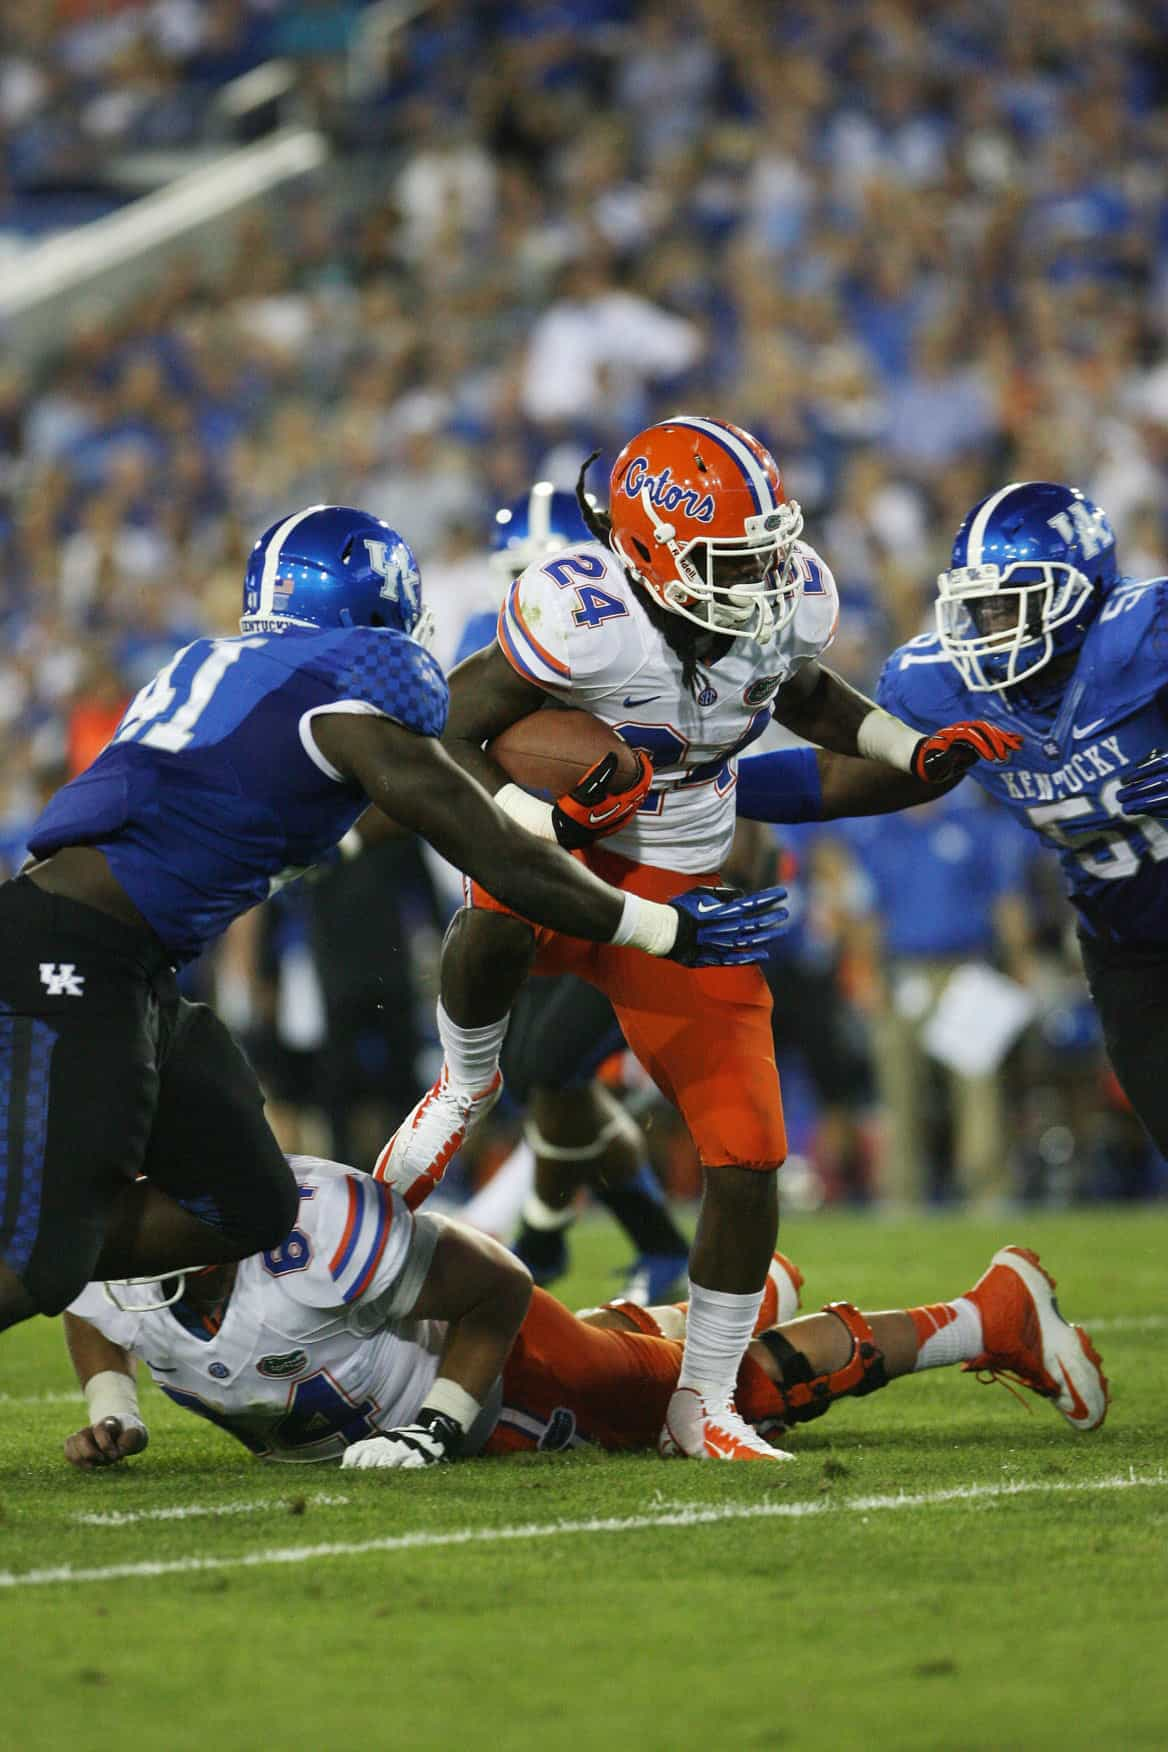 Sep 28, 2013; Lexington, KY, USA; Florida Gators running back Matt Jones (24) runs the ball against Kentucky Wildcats defensive lineman TraVaughn Paschal (41) and defensive lineman Tristian Johnson (51) at Commonwealth Stadium. Photo: Mark Zerof-USA TODAY Sports